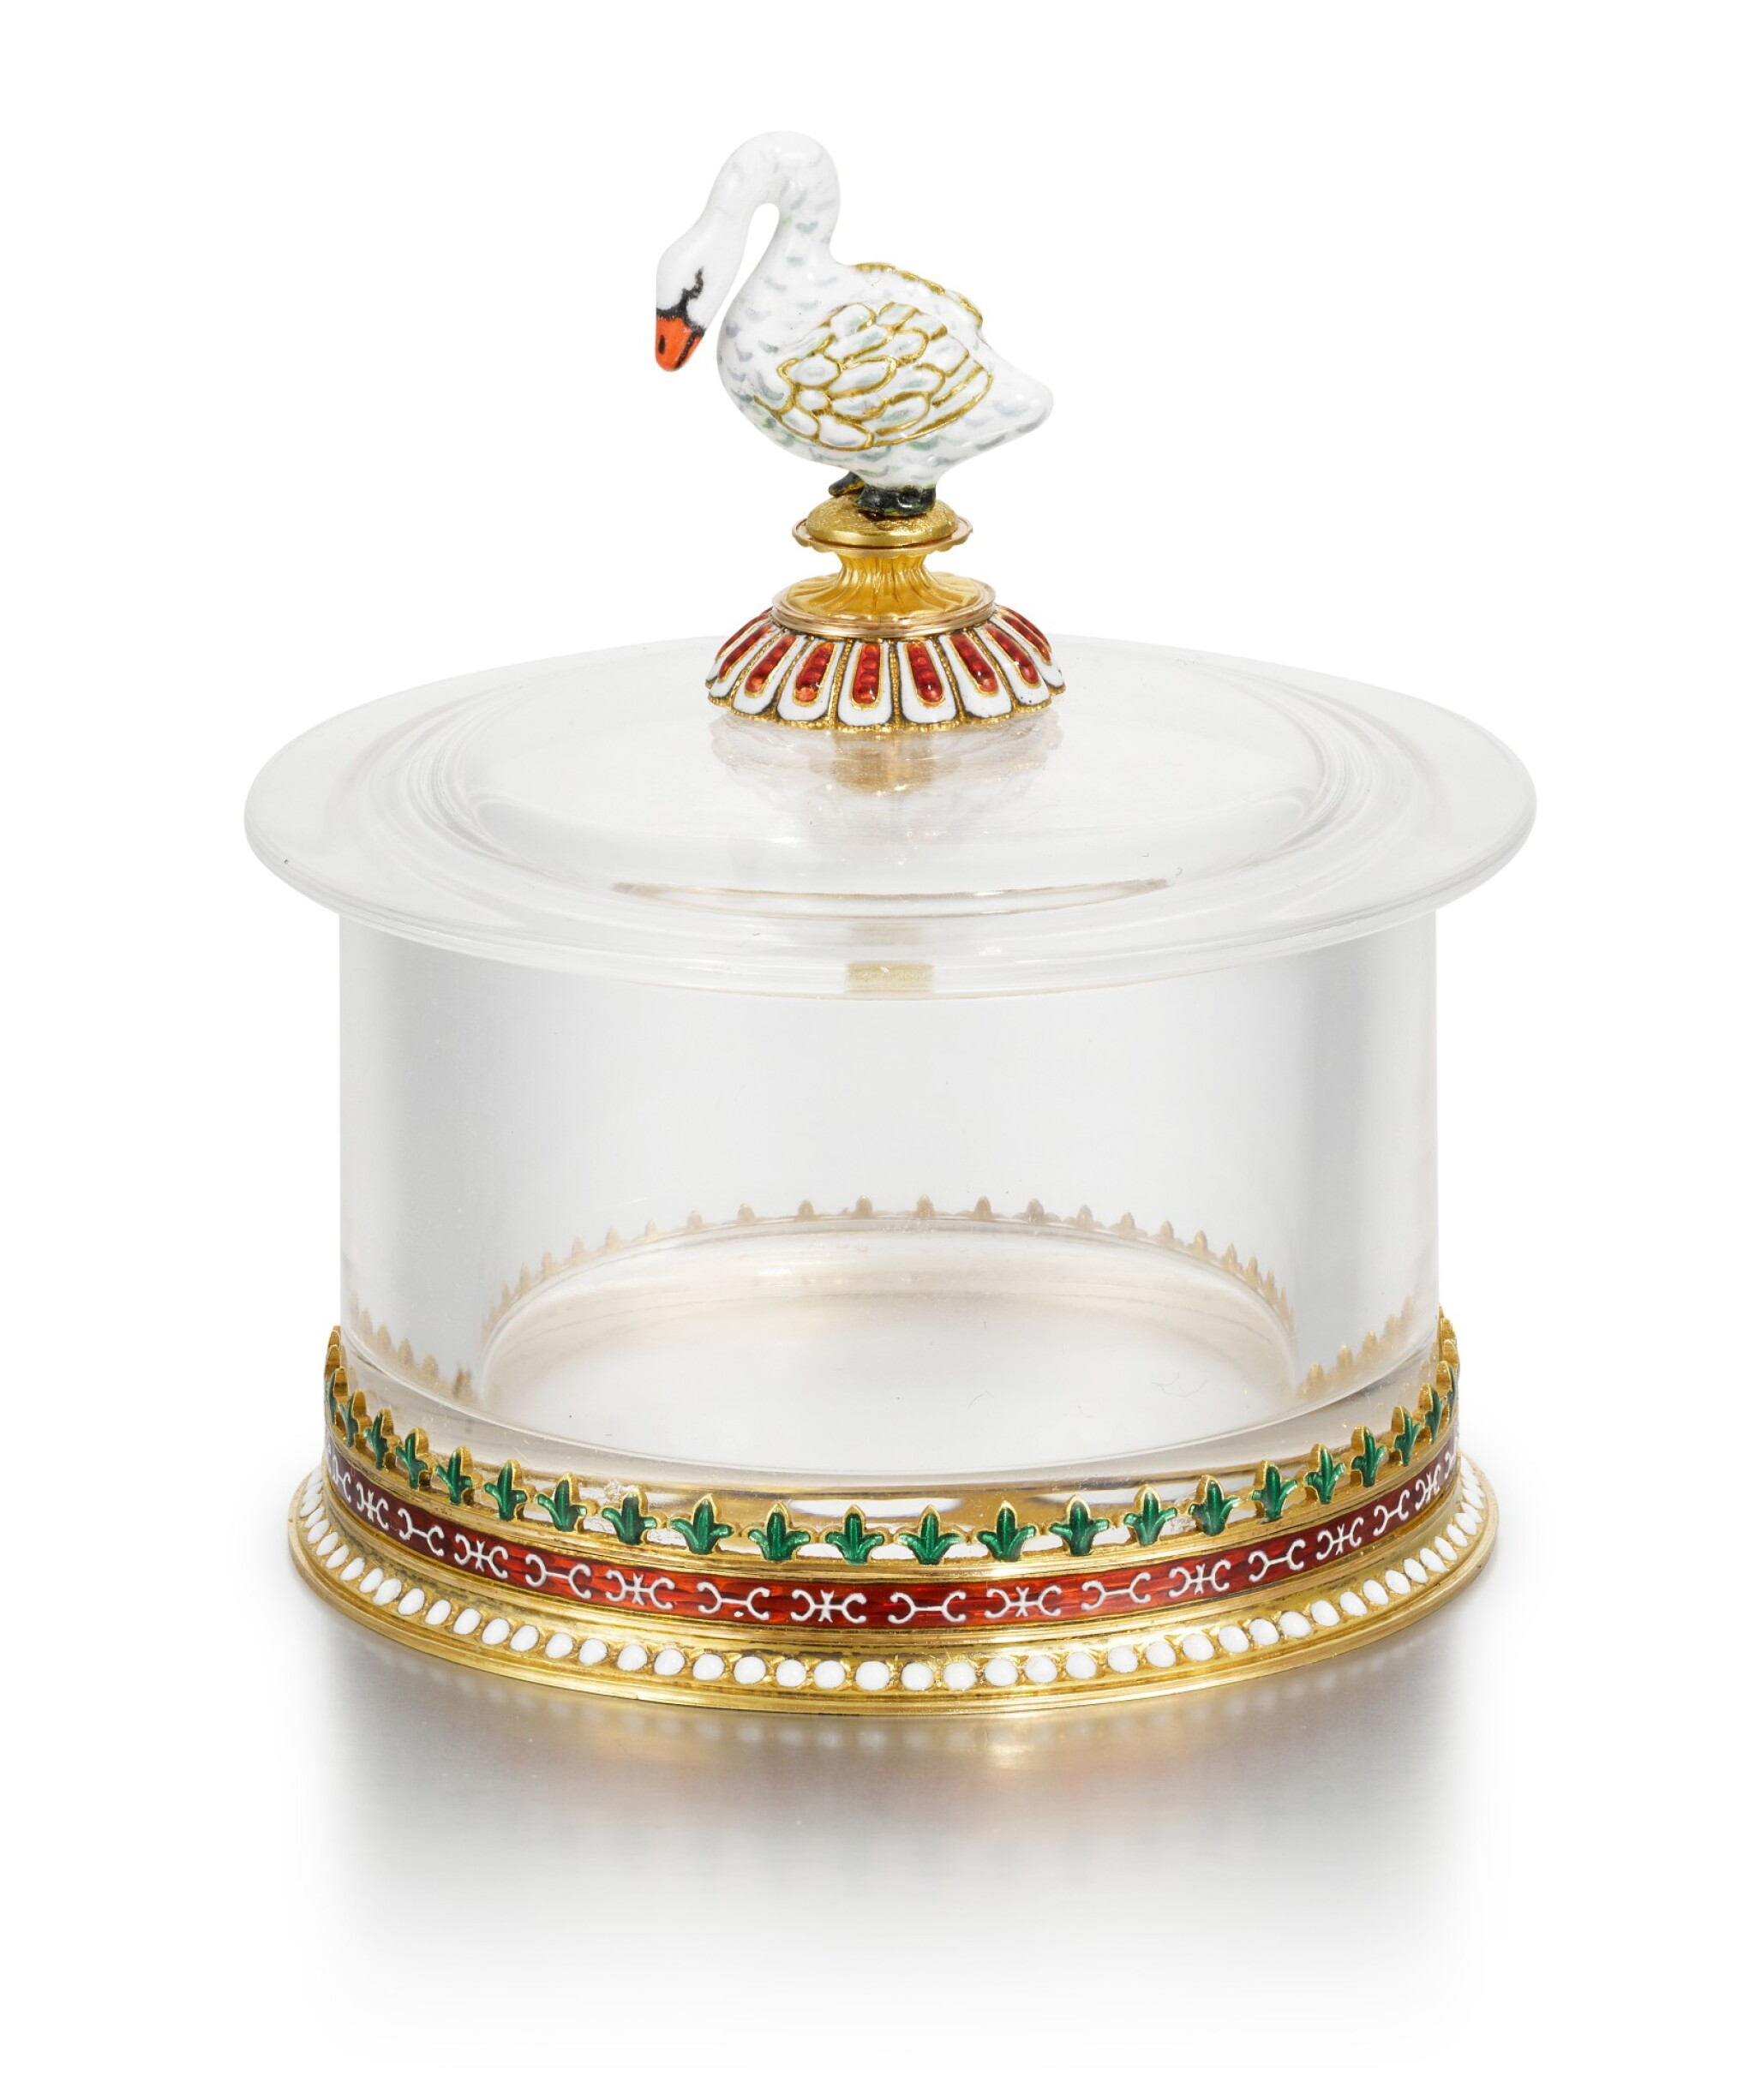 View full screen - View 1 of Lot 40. A Fabergé gold, rock crystal and en plein enamel box, workmaster Michael Perchin, Moscow, circa 1890.